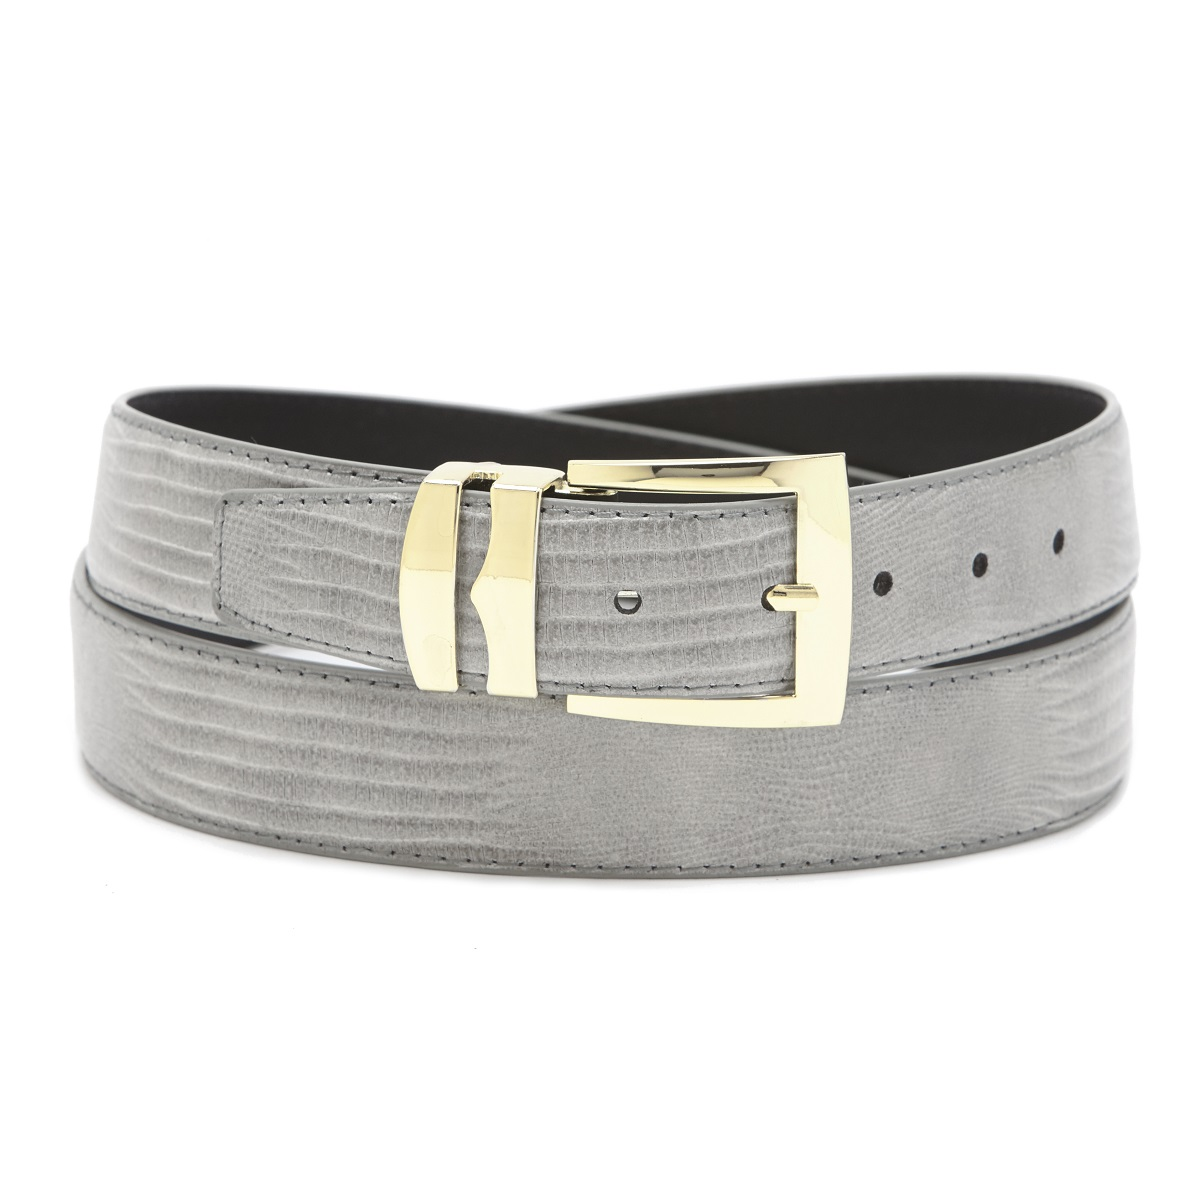 s bonded leather belt in solid colors lizard skin